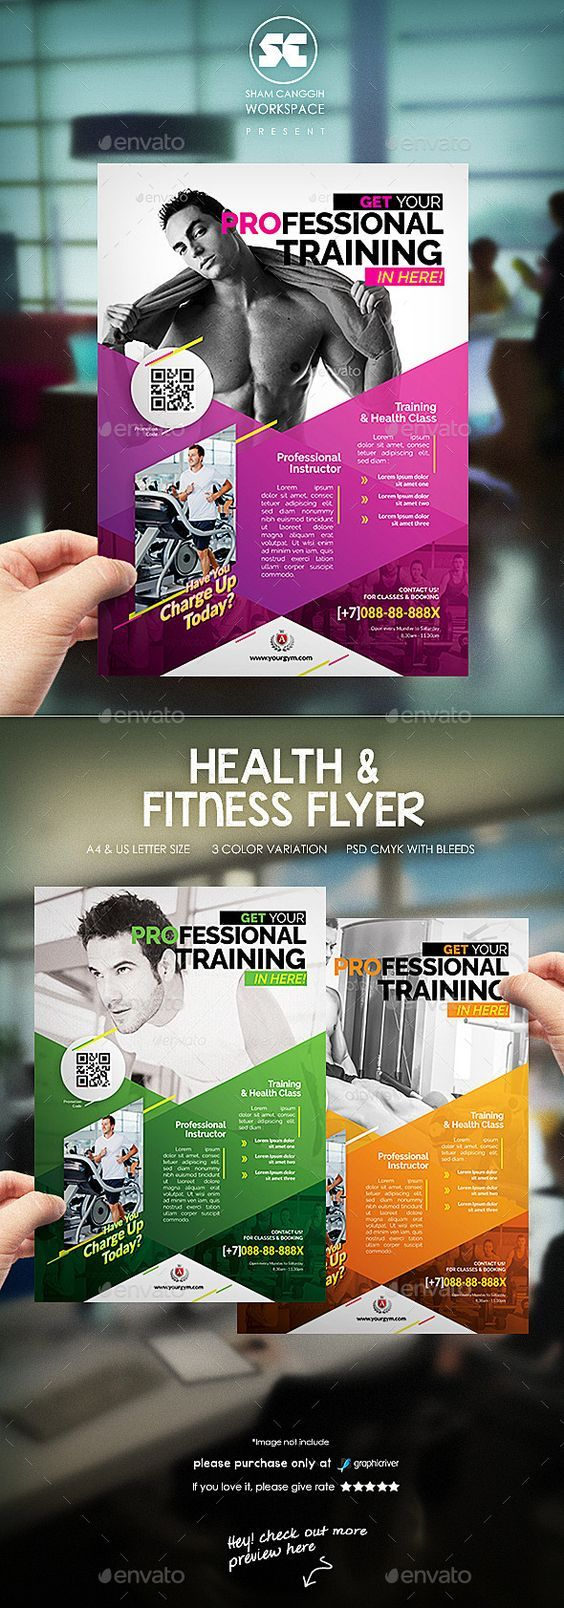 Fitness  Gym Flyer Template Psd Design Download Http